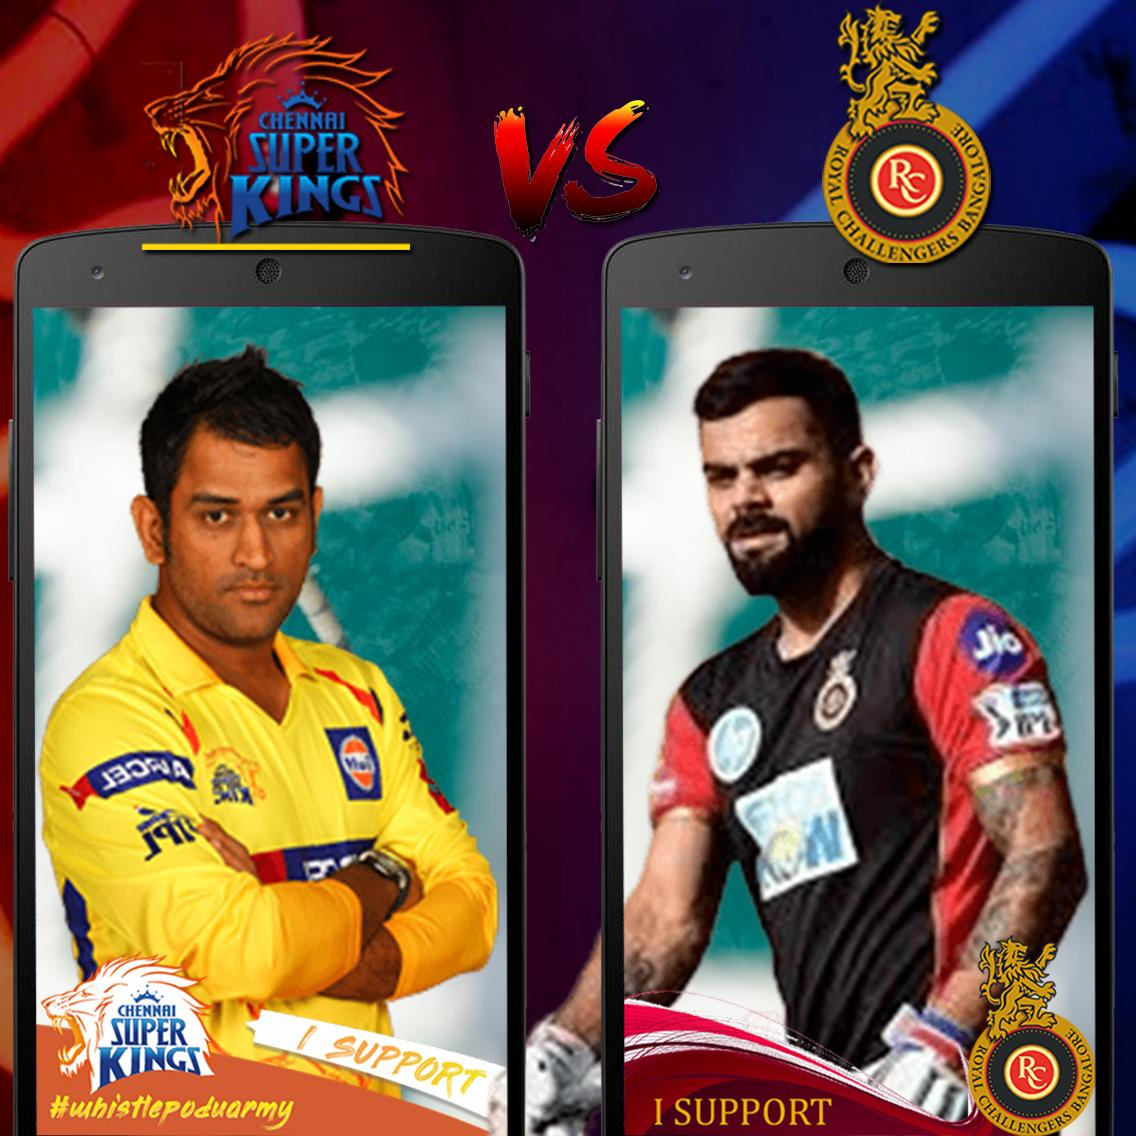 Csk Vs Rcb Selfie Live Ipl Stream Photo Editor For Android Apk Download